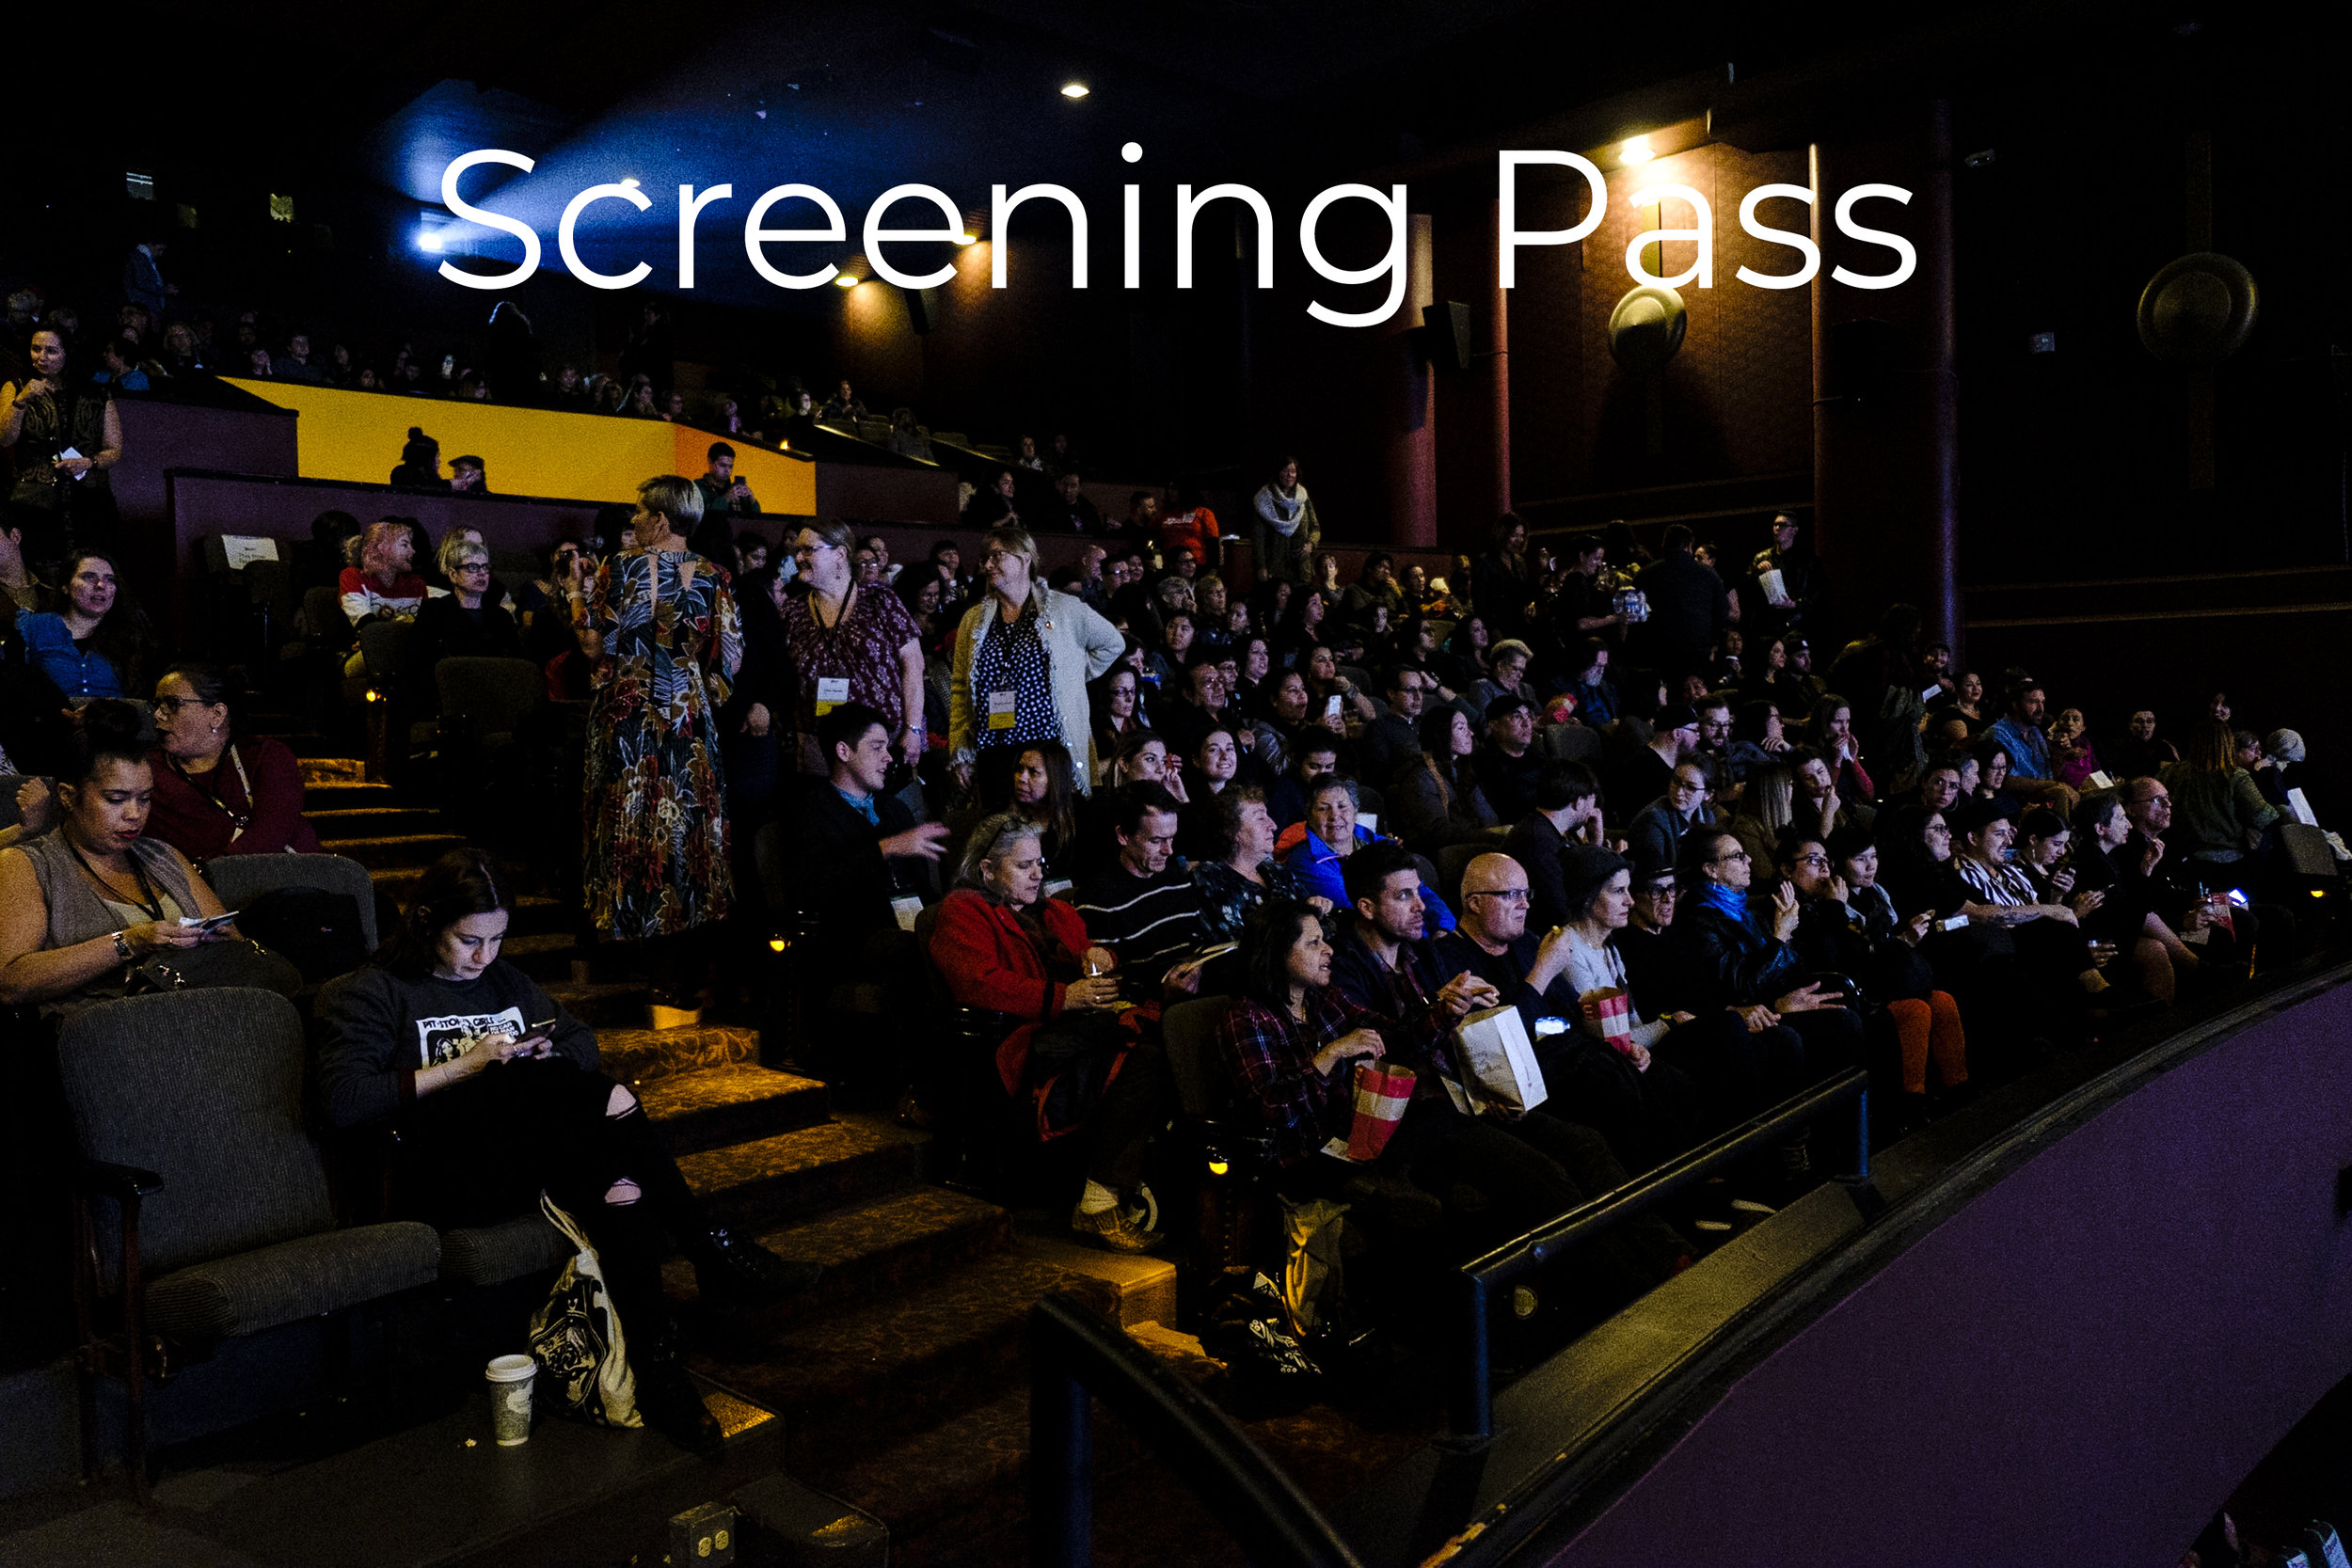 Screening Pass$100 - Great for film lovers who plan to see multiple screenings!Screening Pass gives you access to:· 1 ticket per film screening, including Opening & Closing Night Galas· The Beat music night· 20th Birthday PartyPasses are Not Transferable and tickets are based on availability.